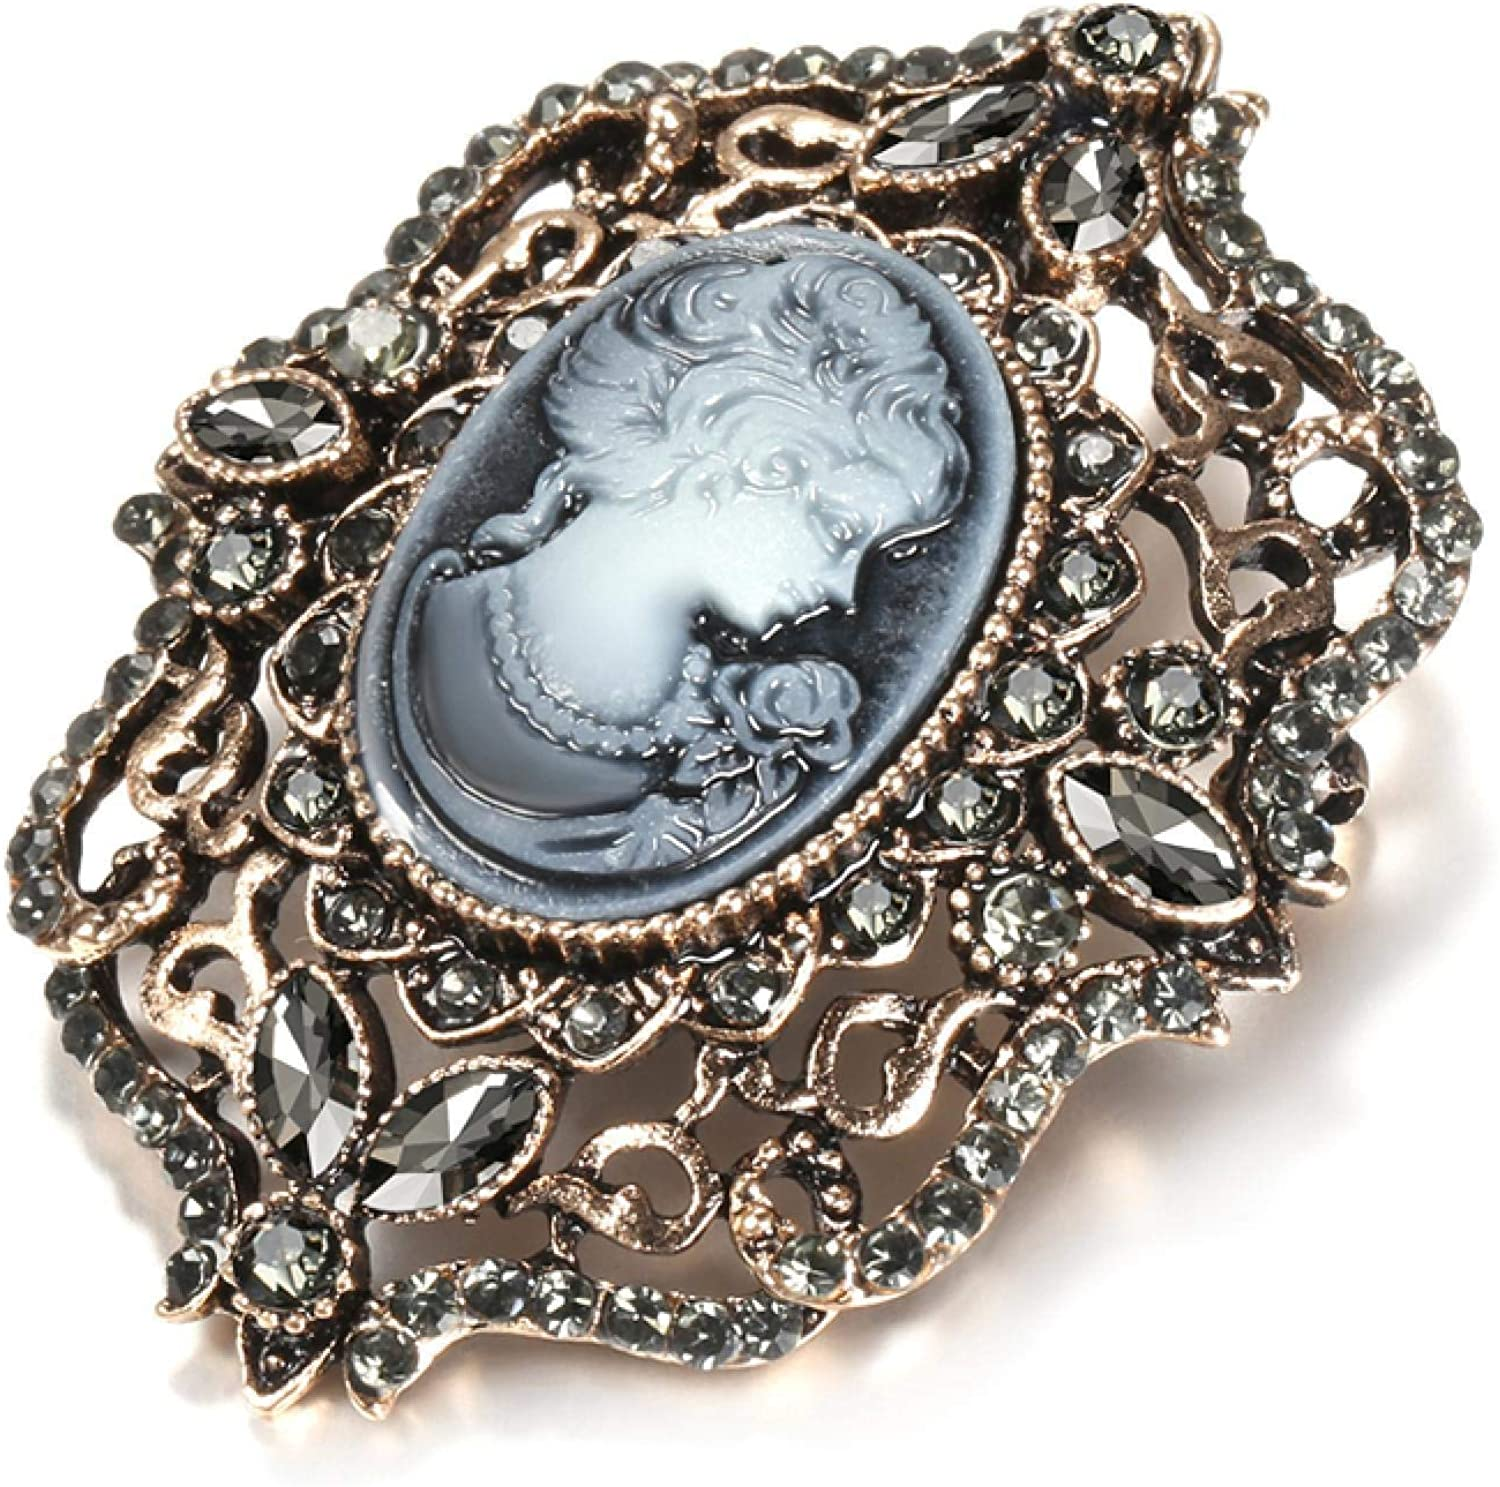 QDGERWGY Fashion Sale price Gray Crystal Brooch Fe Now free shipping for Ethnic Bohemia Women